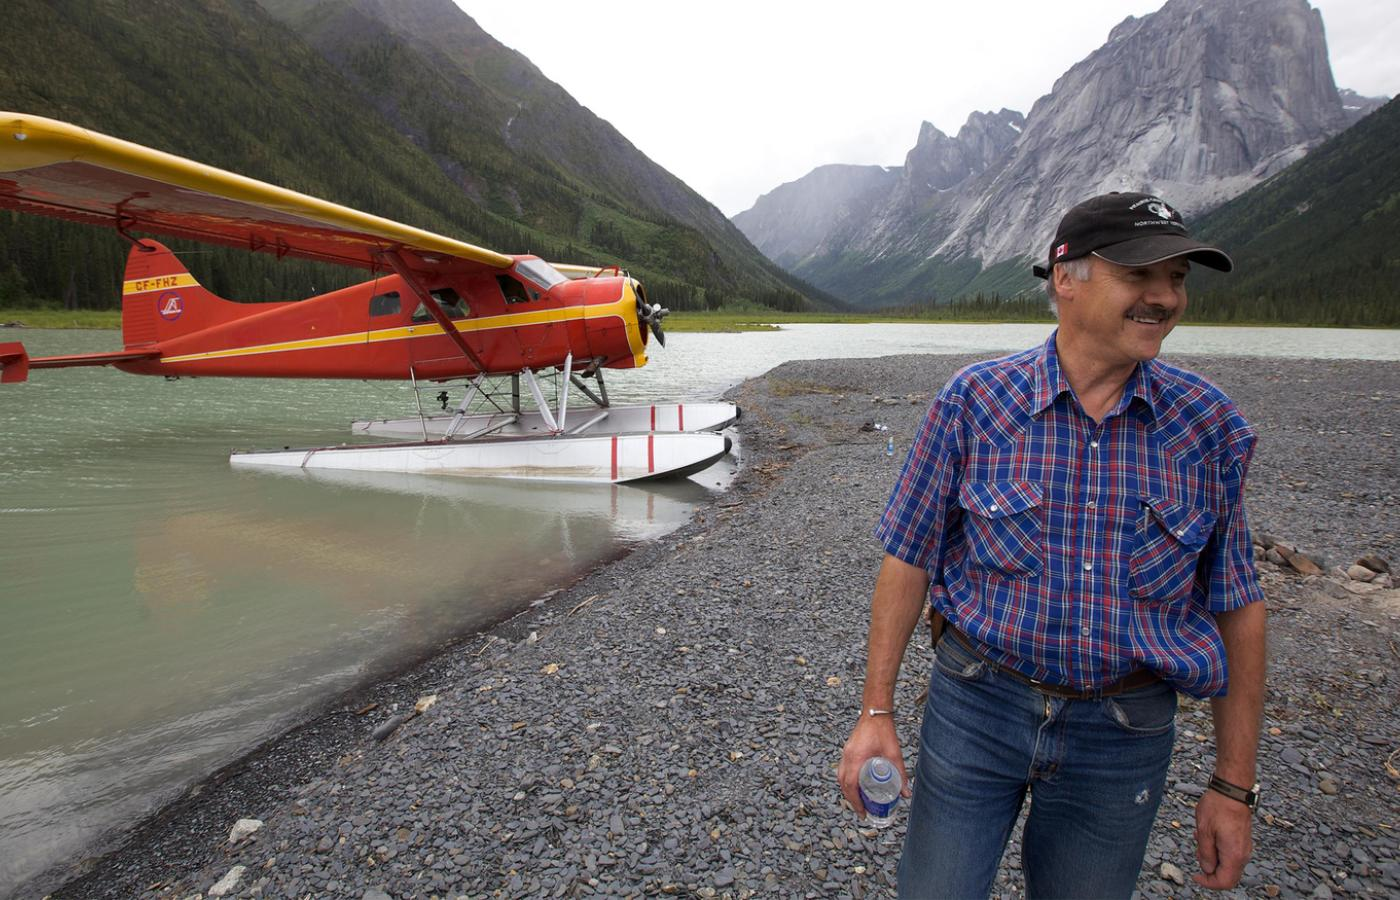 ted grant stands in front of his floatplane in the dehcho region